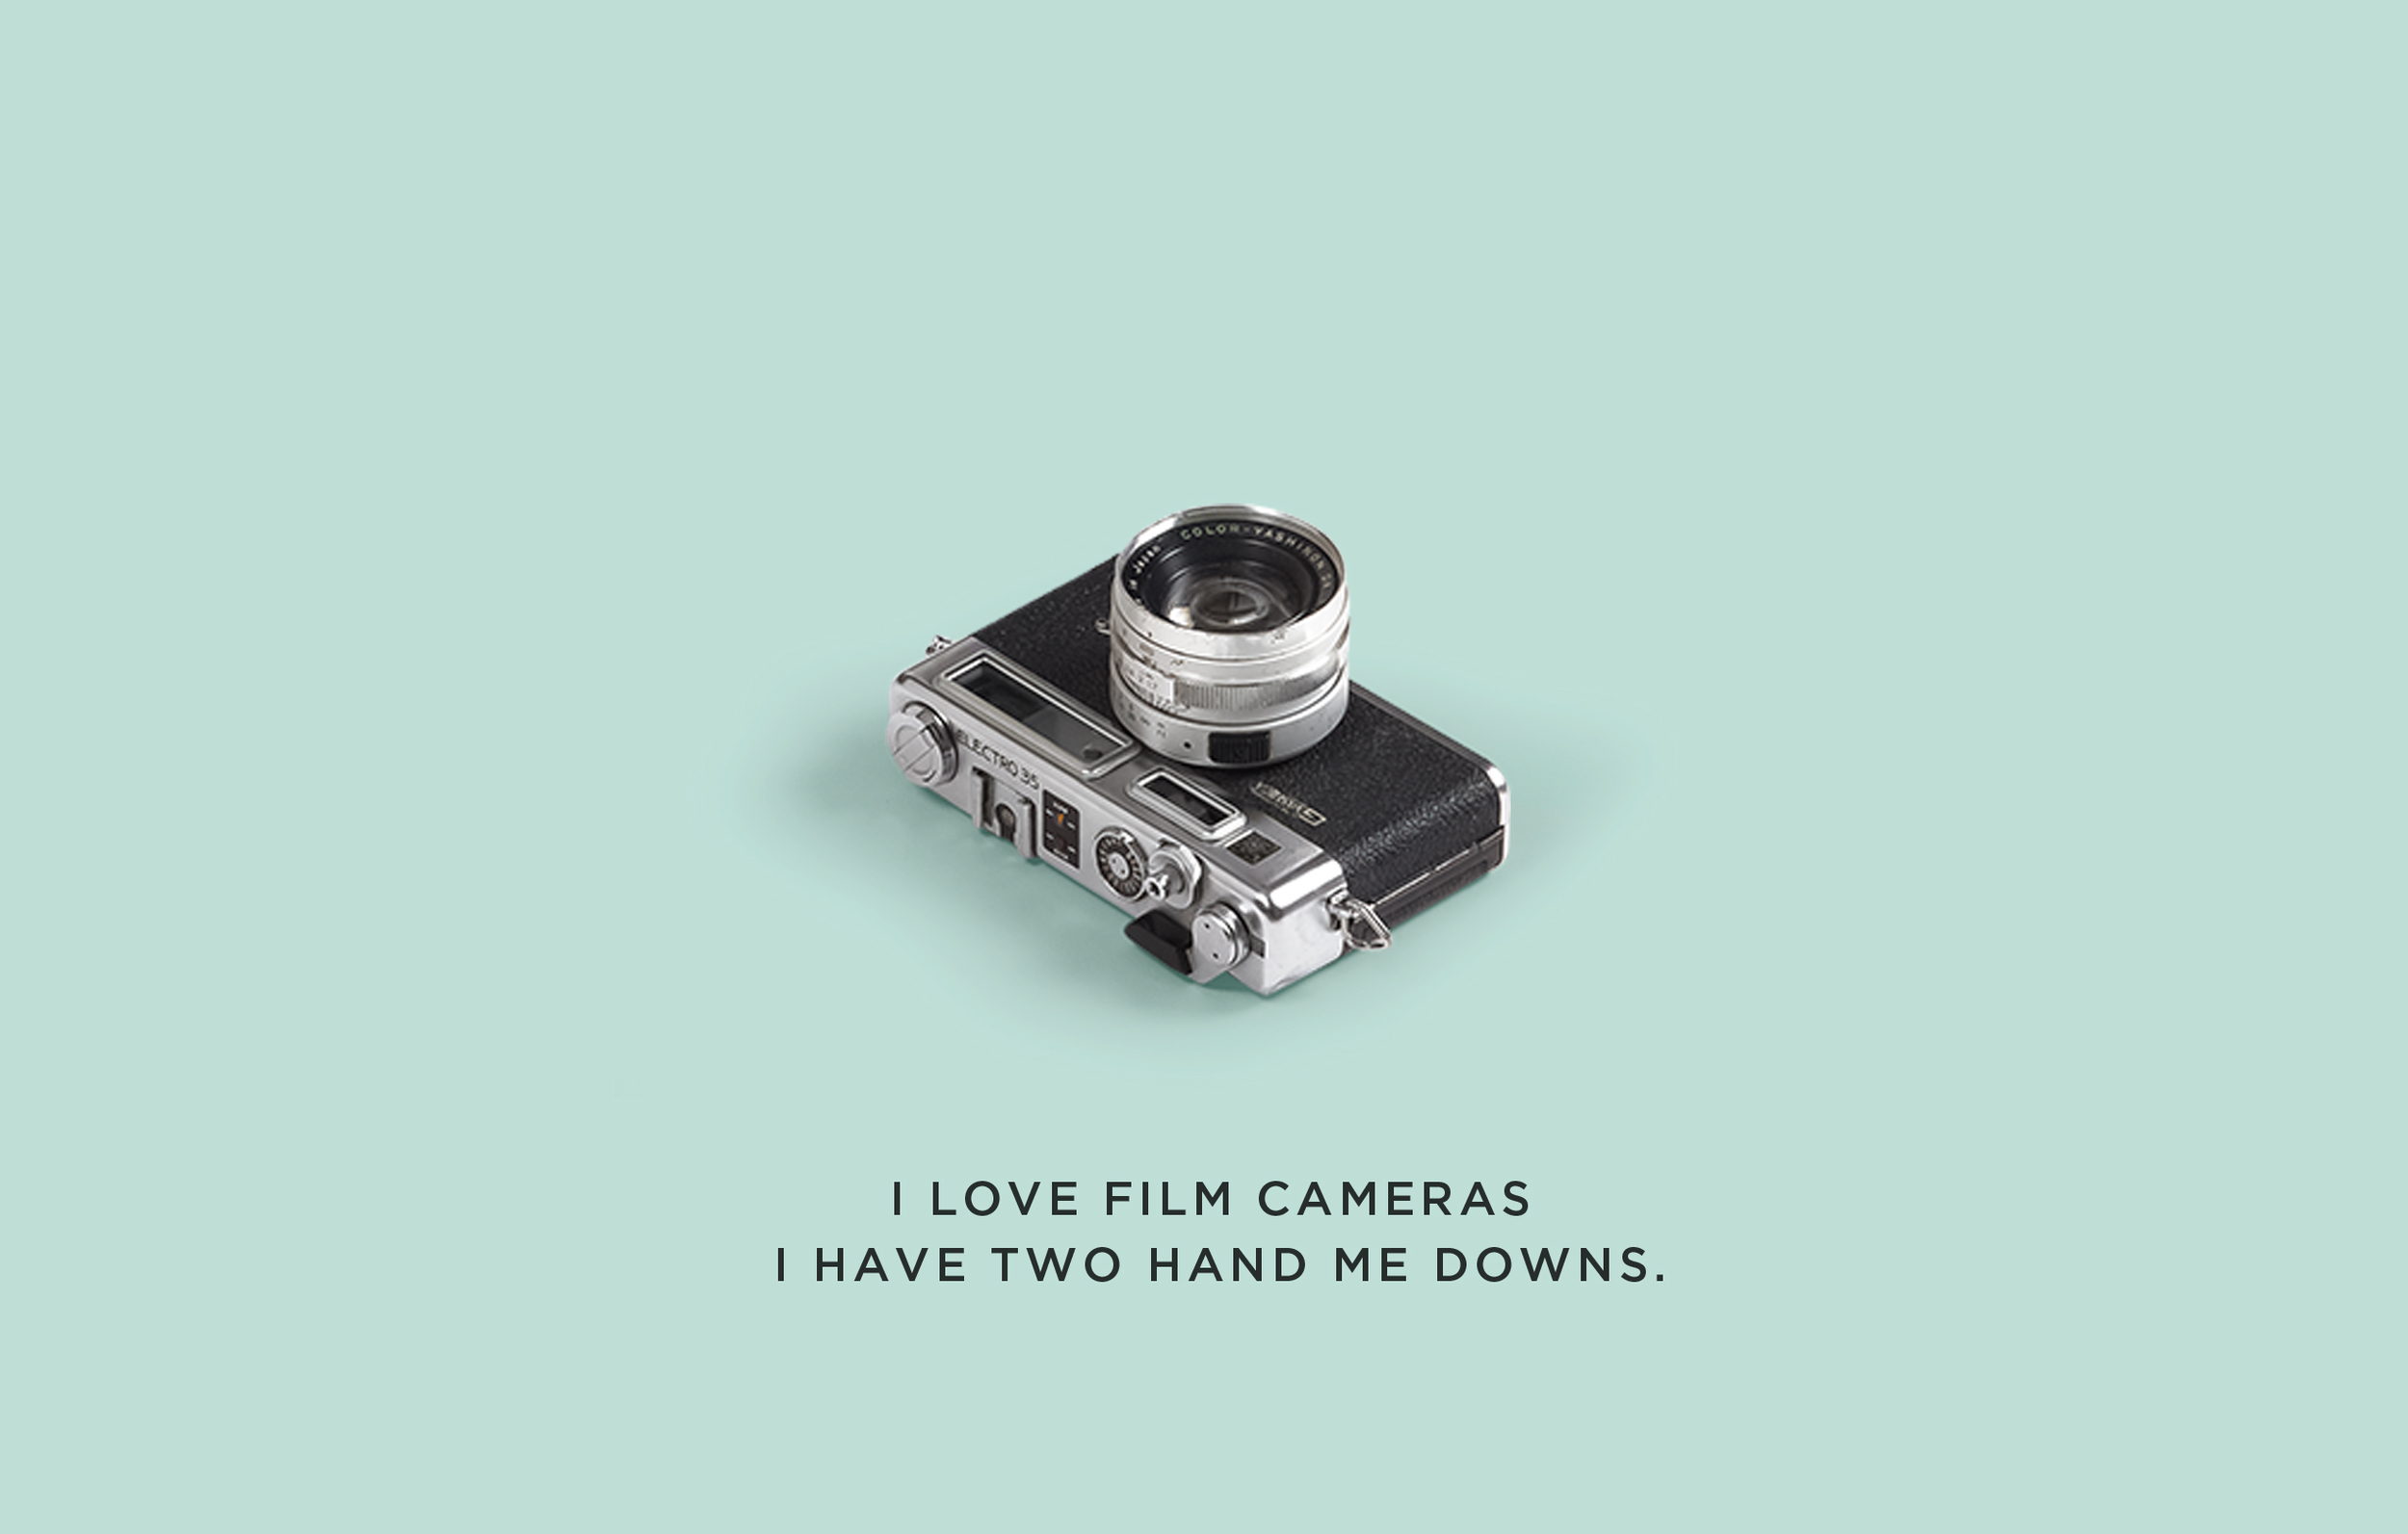 Rachel Mutia loves old cameras.